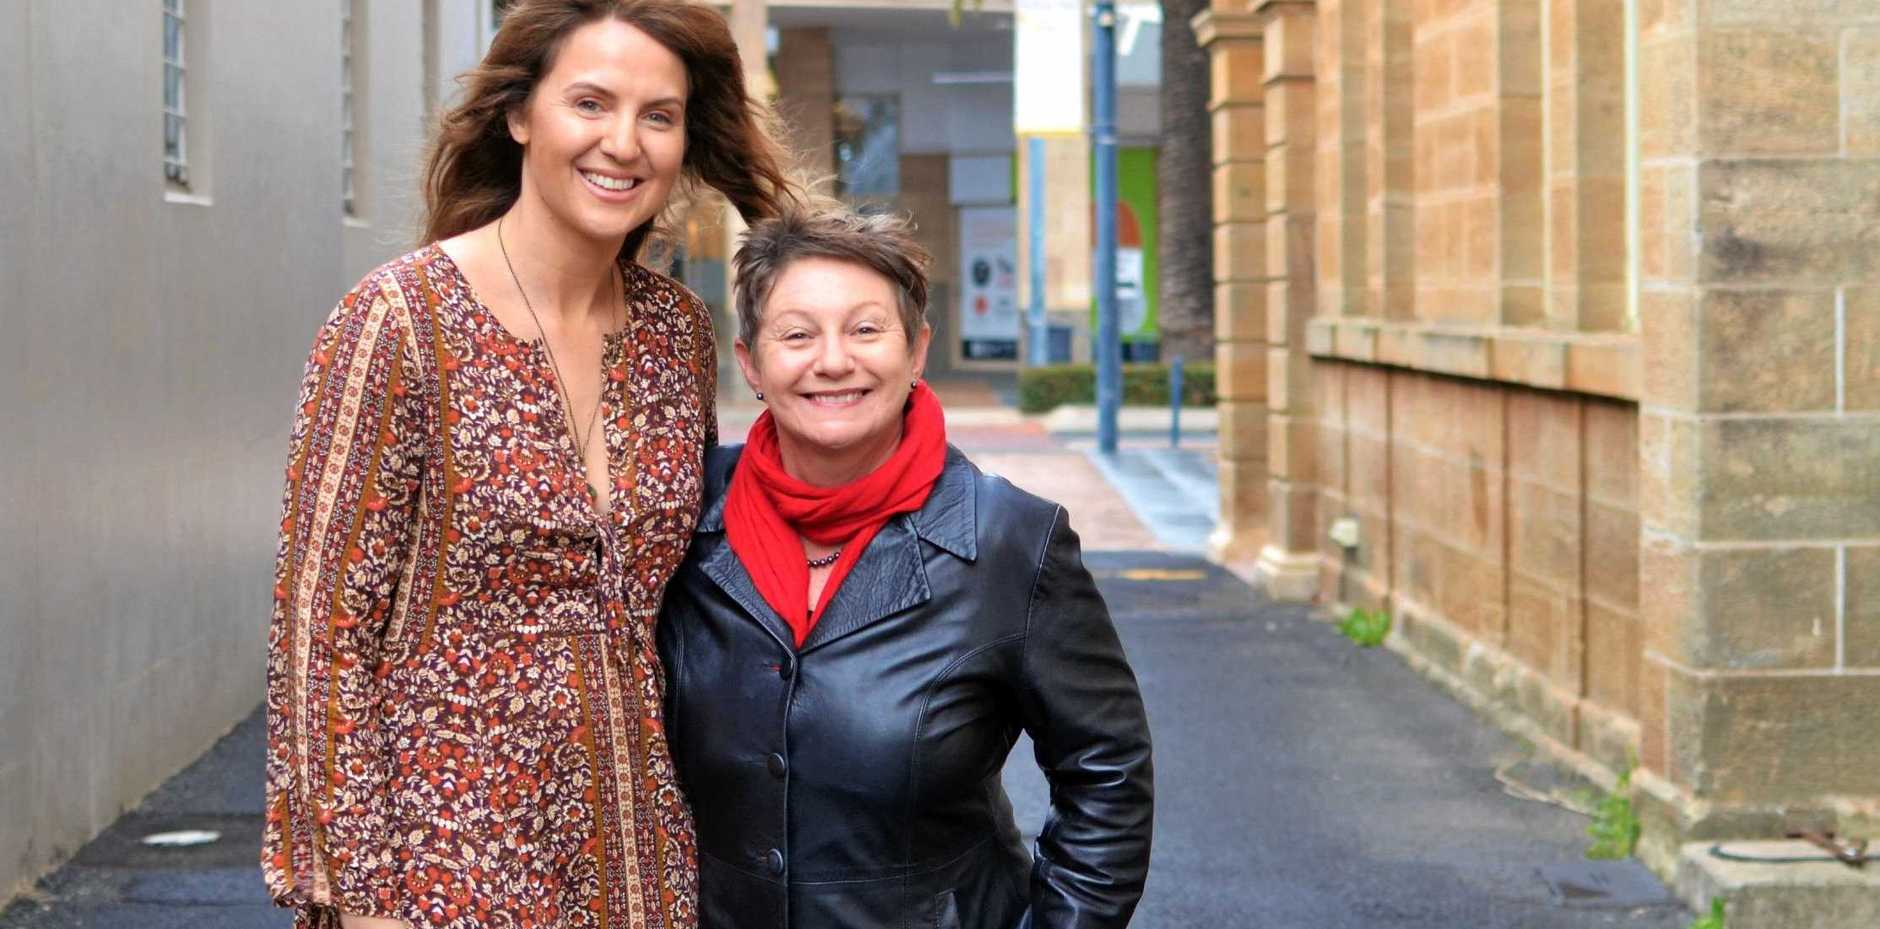 CALLING ALL CREATIVES: Storm Lahiff and Julia Keogh are calling on residents of the Southern Downs to step up and help shape their community.